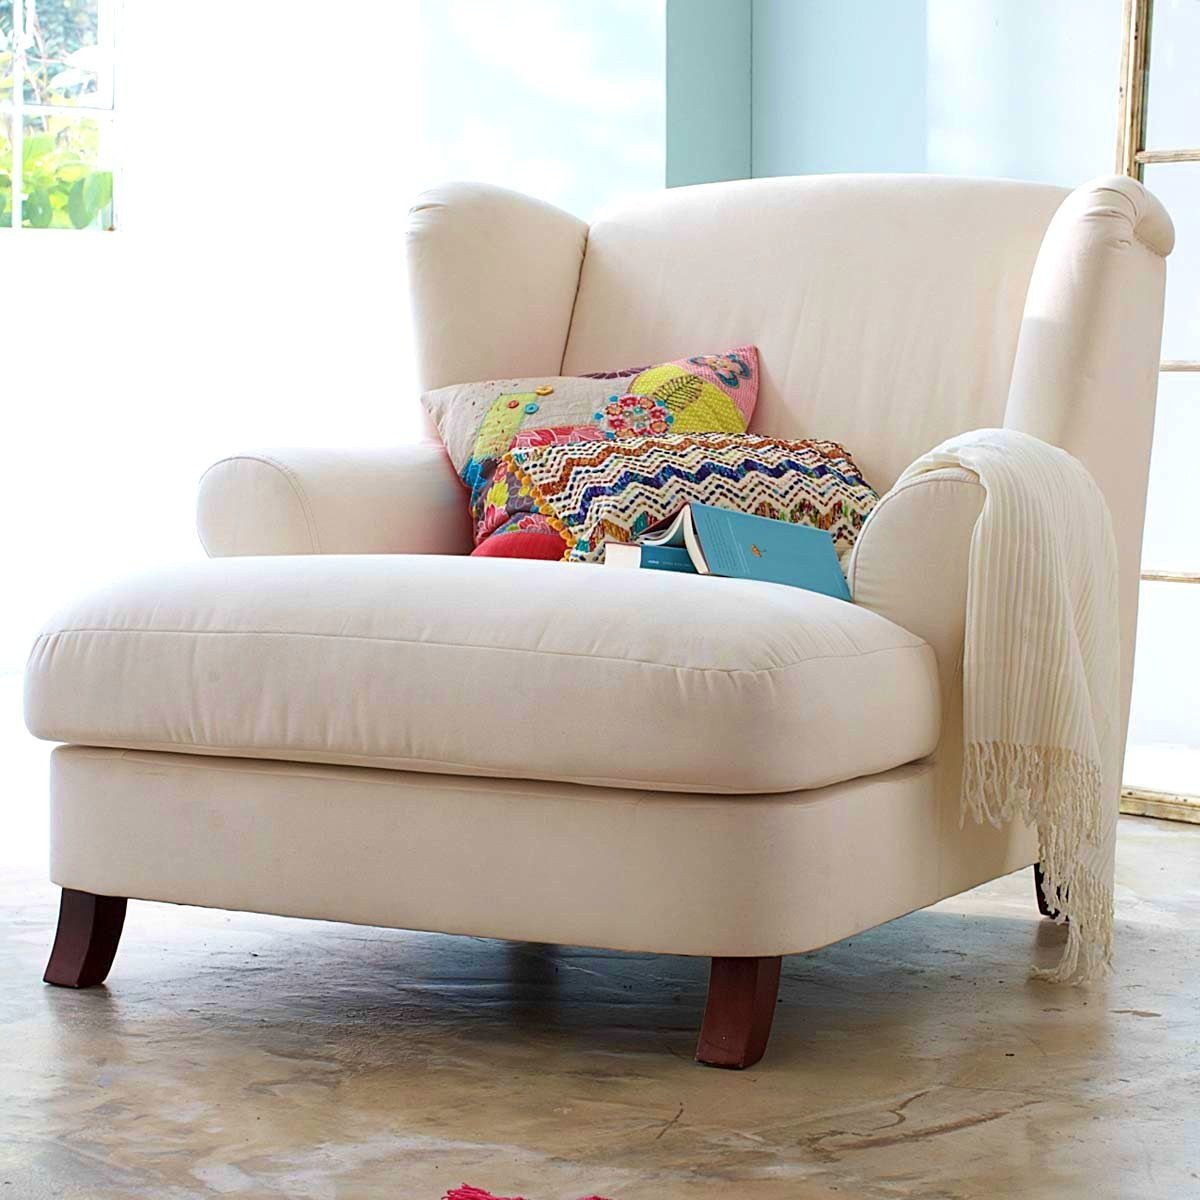 Comfy Reading Chair for Bedroom Luxury Popular S Kids Reading Chair